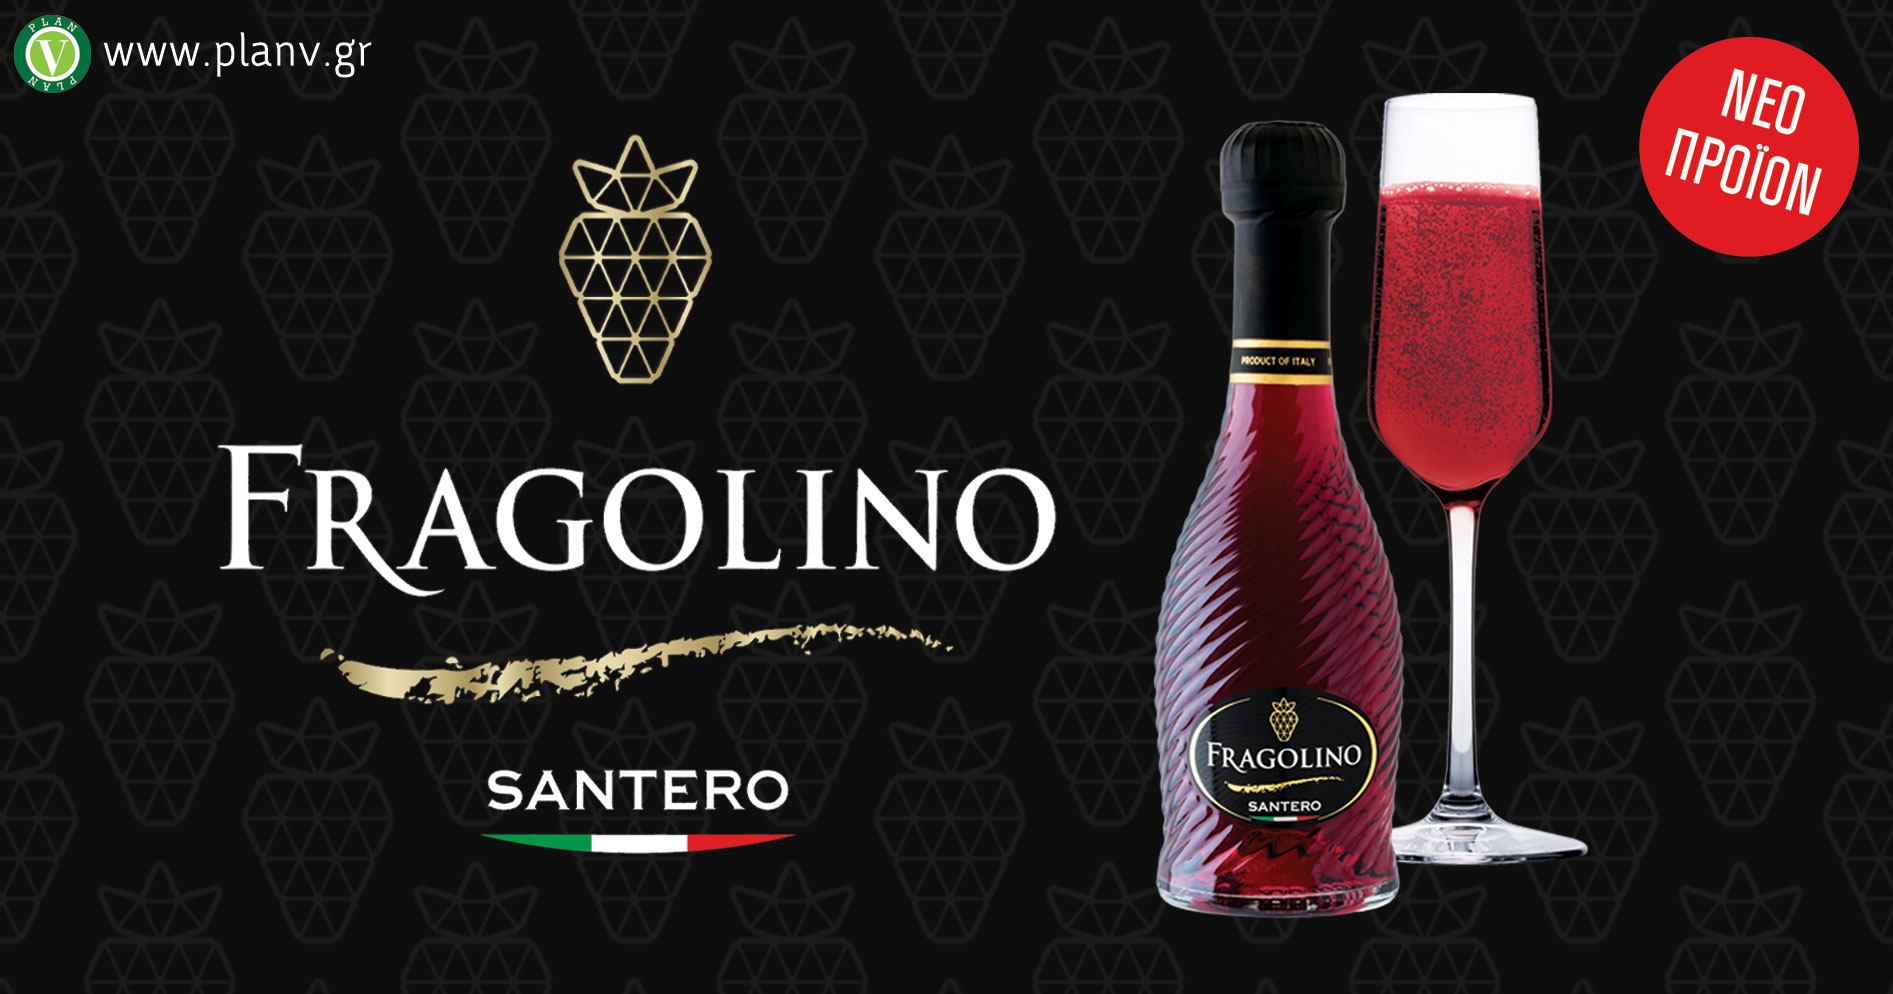 Fragolino Santero 200ml - FB | planv.gr